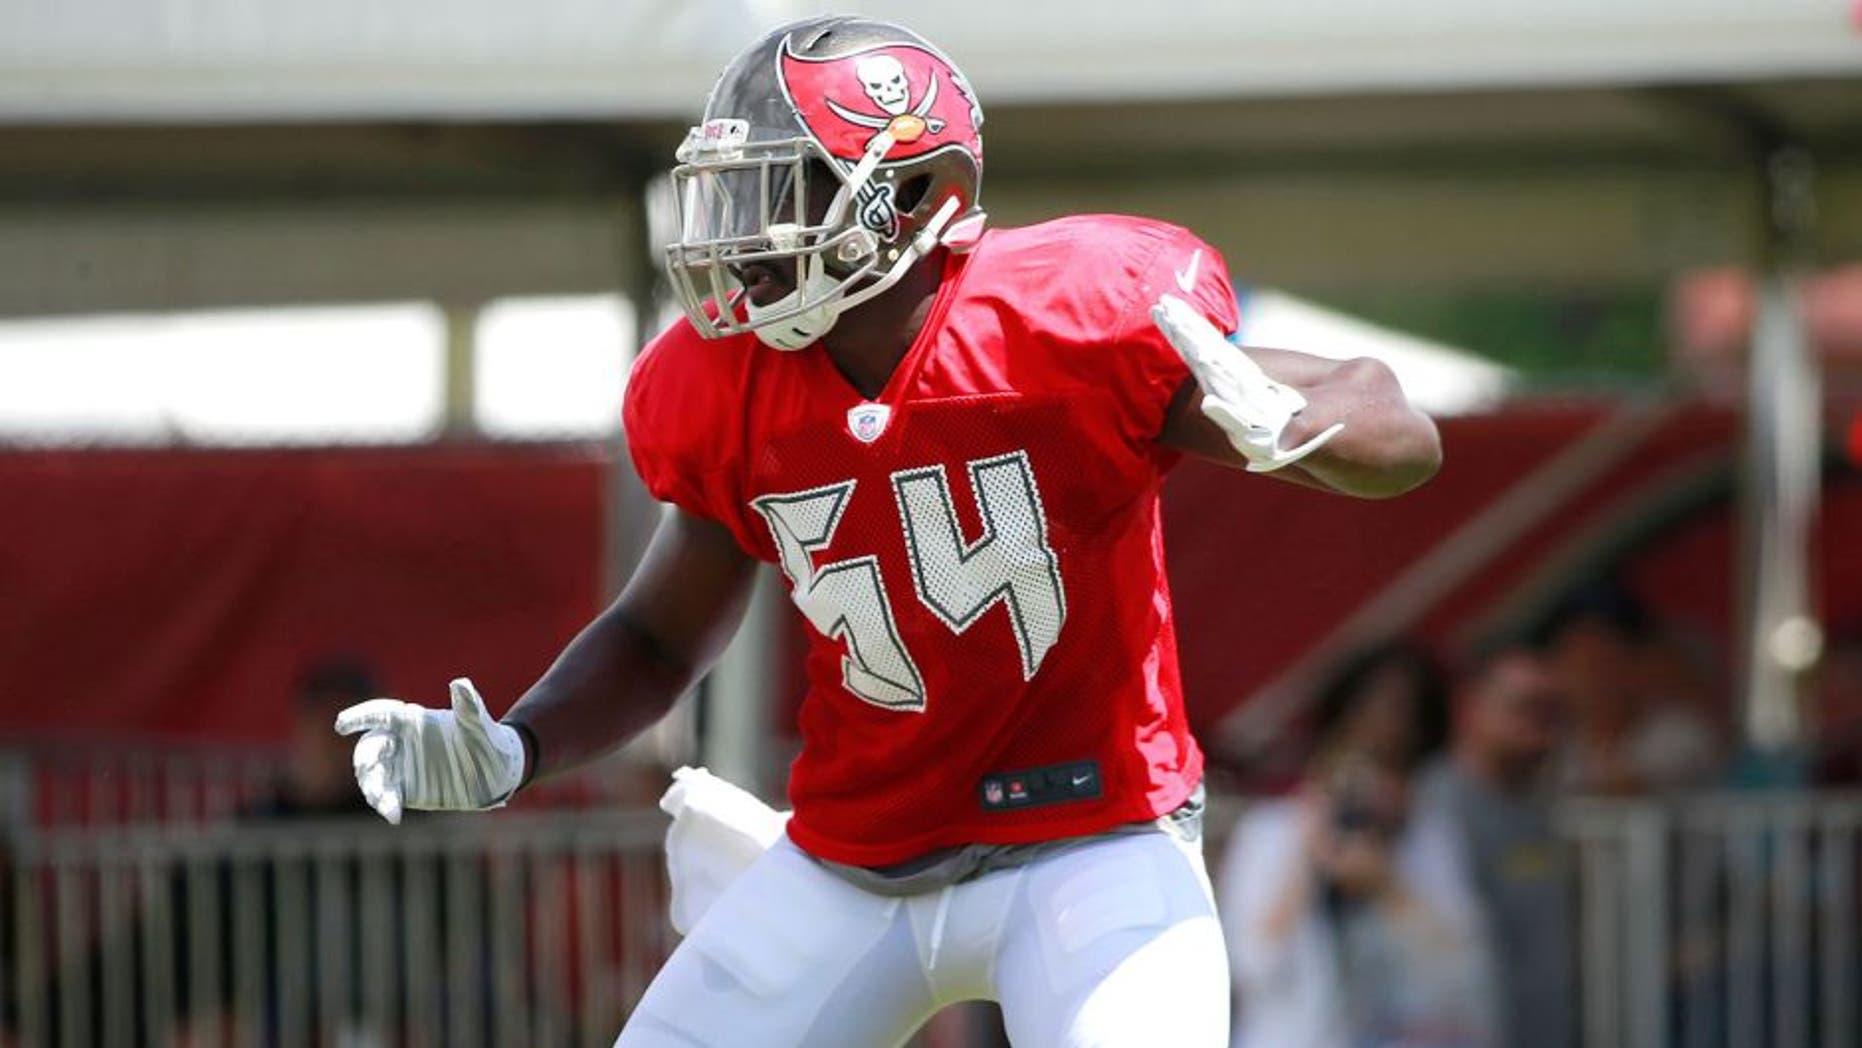 Aug 6, 2015; Tampa Bay, FL, USA; Tampa Bay Buccaneers outside linebacker Lavonte David (54) works out during training camp at One Buc Place. Mandatory Credit: Kim Klement-USA TODAY Sports